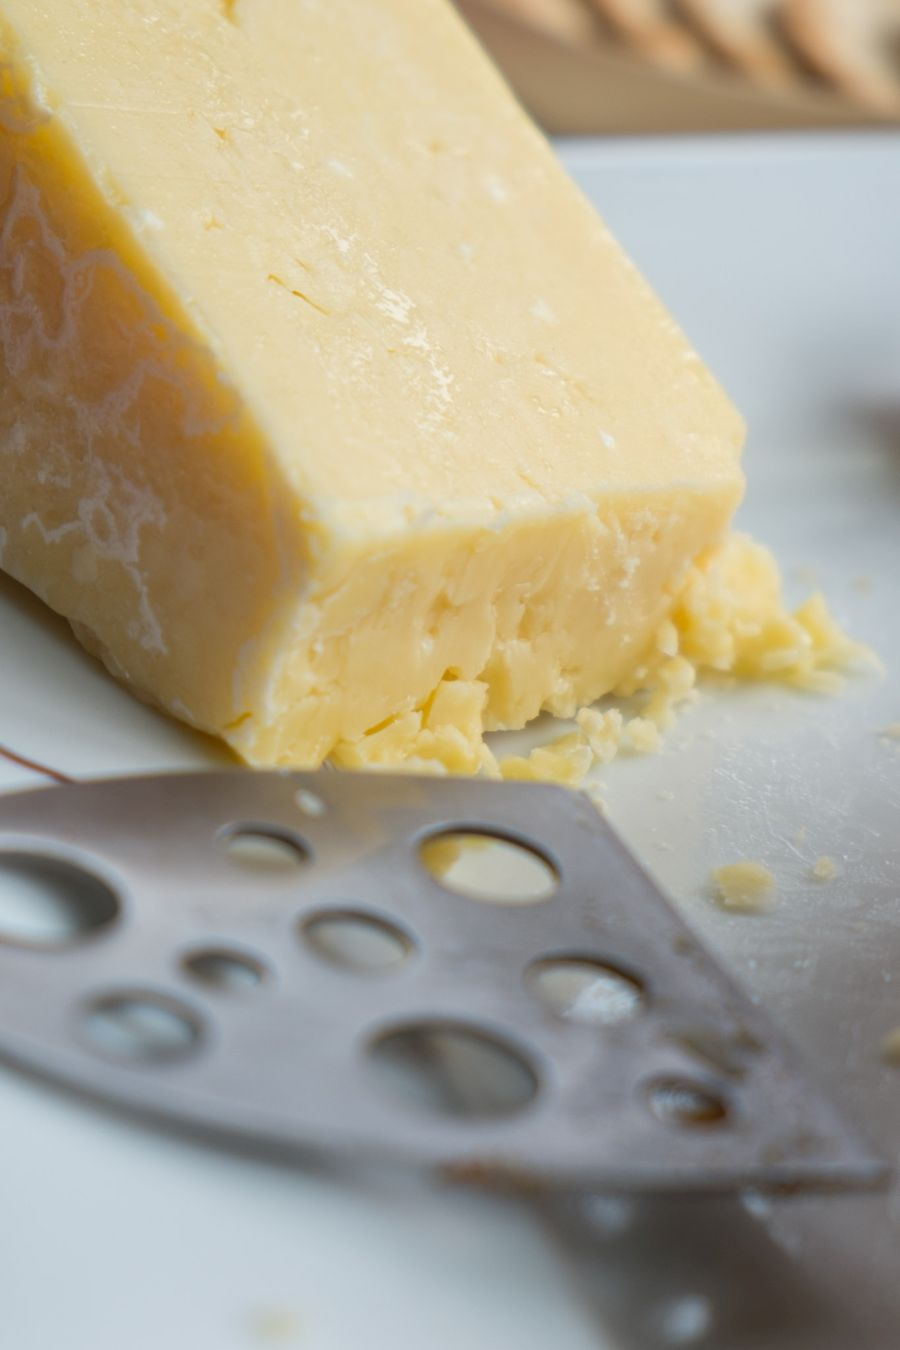 Our favourite - Surprise Bay Cheddar